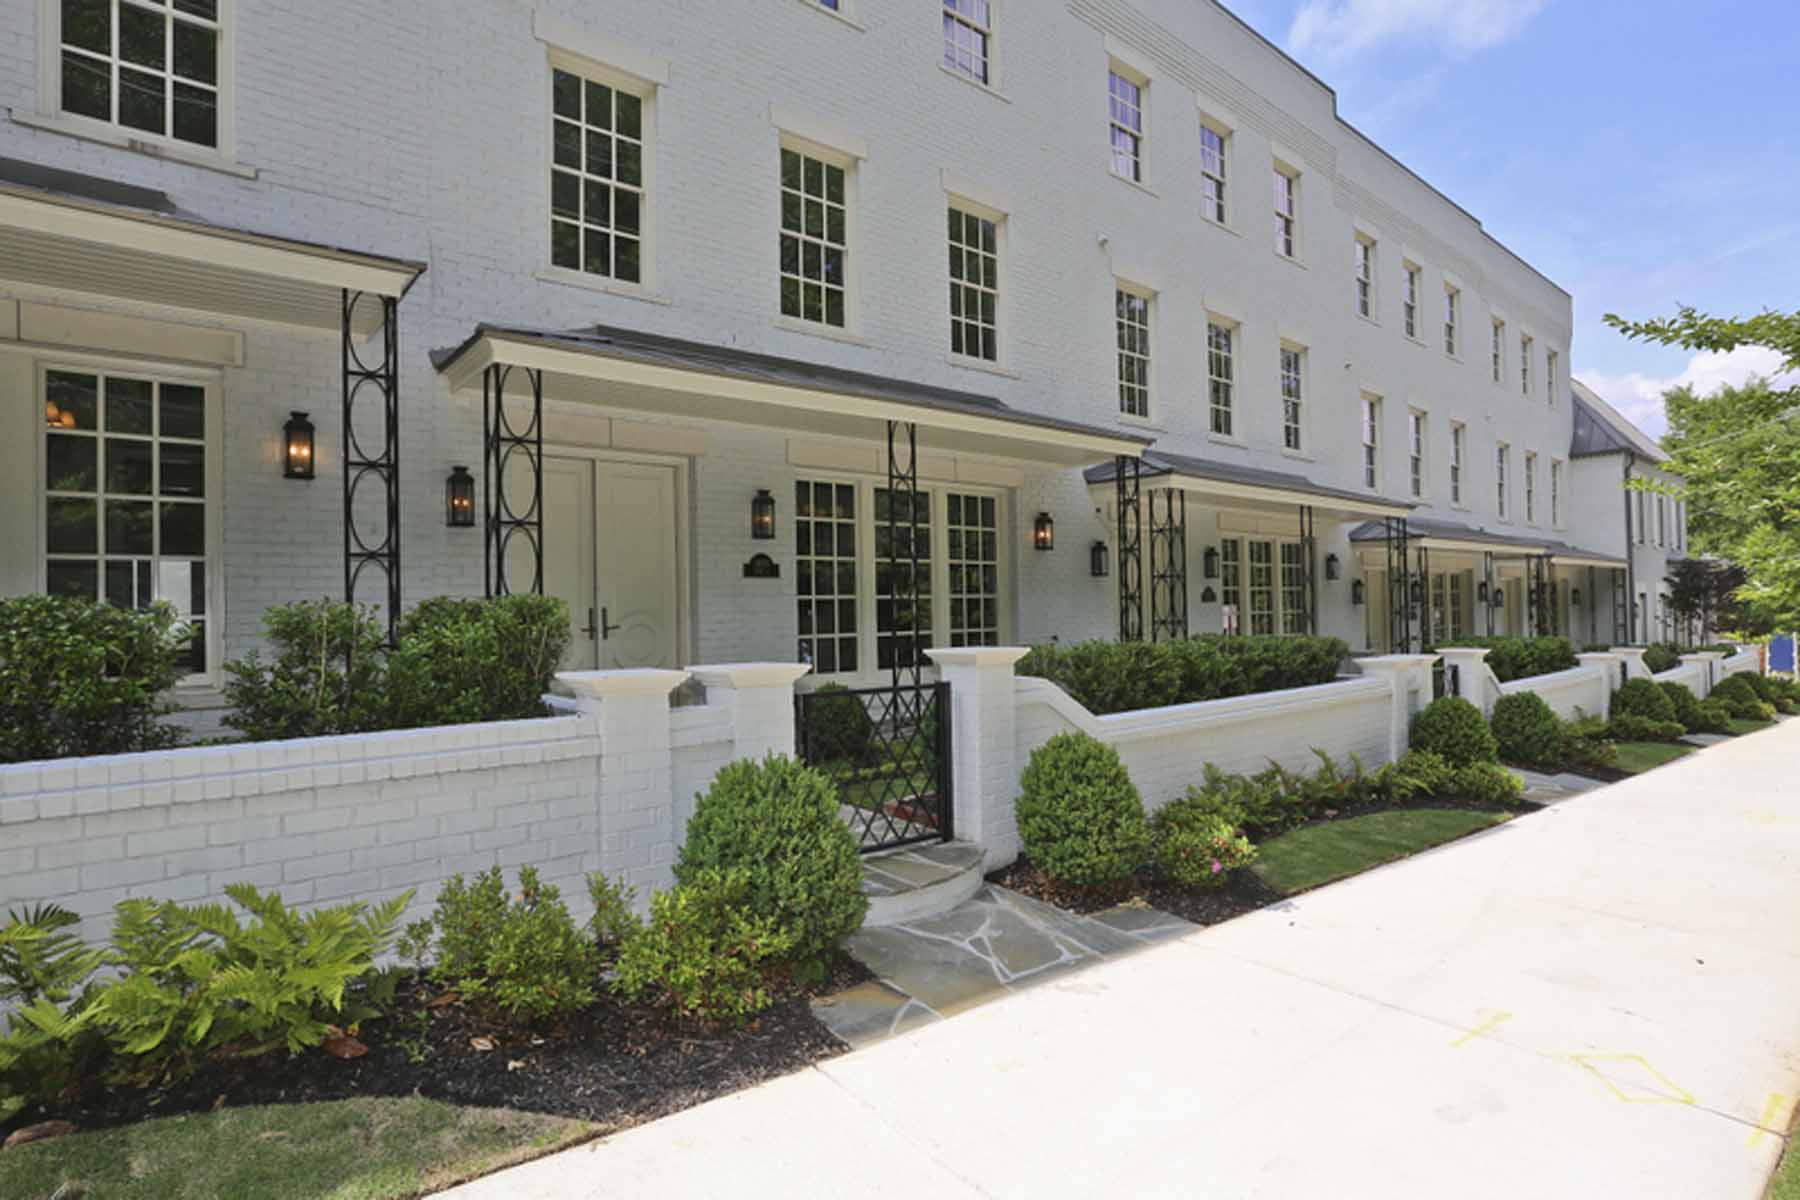 Townhouse for Sale at BRAND NEW TOWNHOME BY MONTE HEWETT HOMES. 1400 Piedmont Avenue NE No. 6 Atlanta, Georgia, 30309 United States